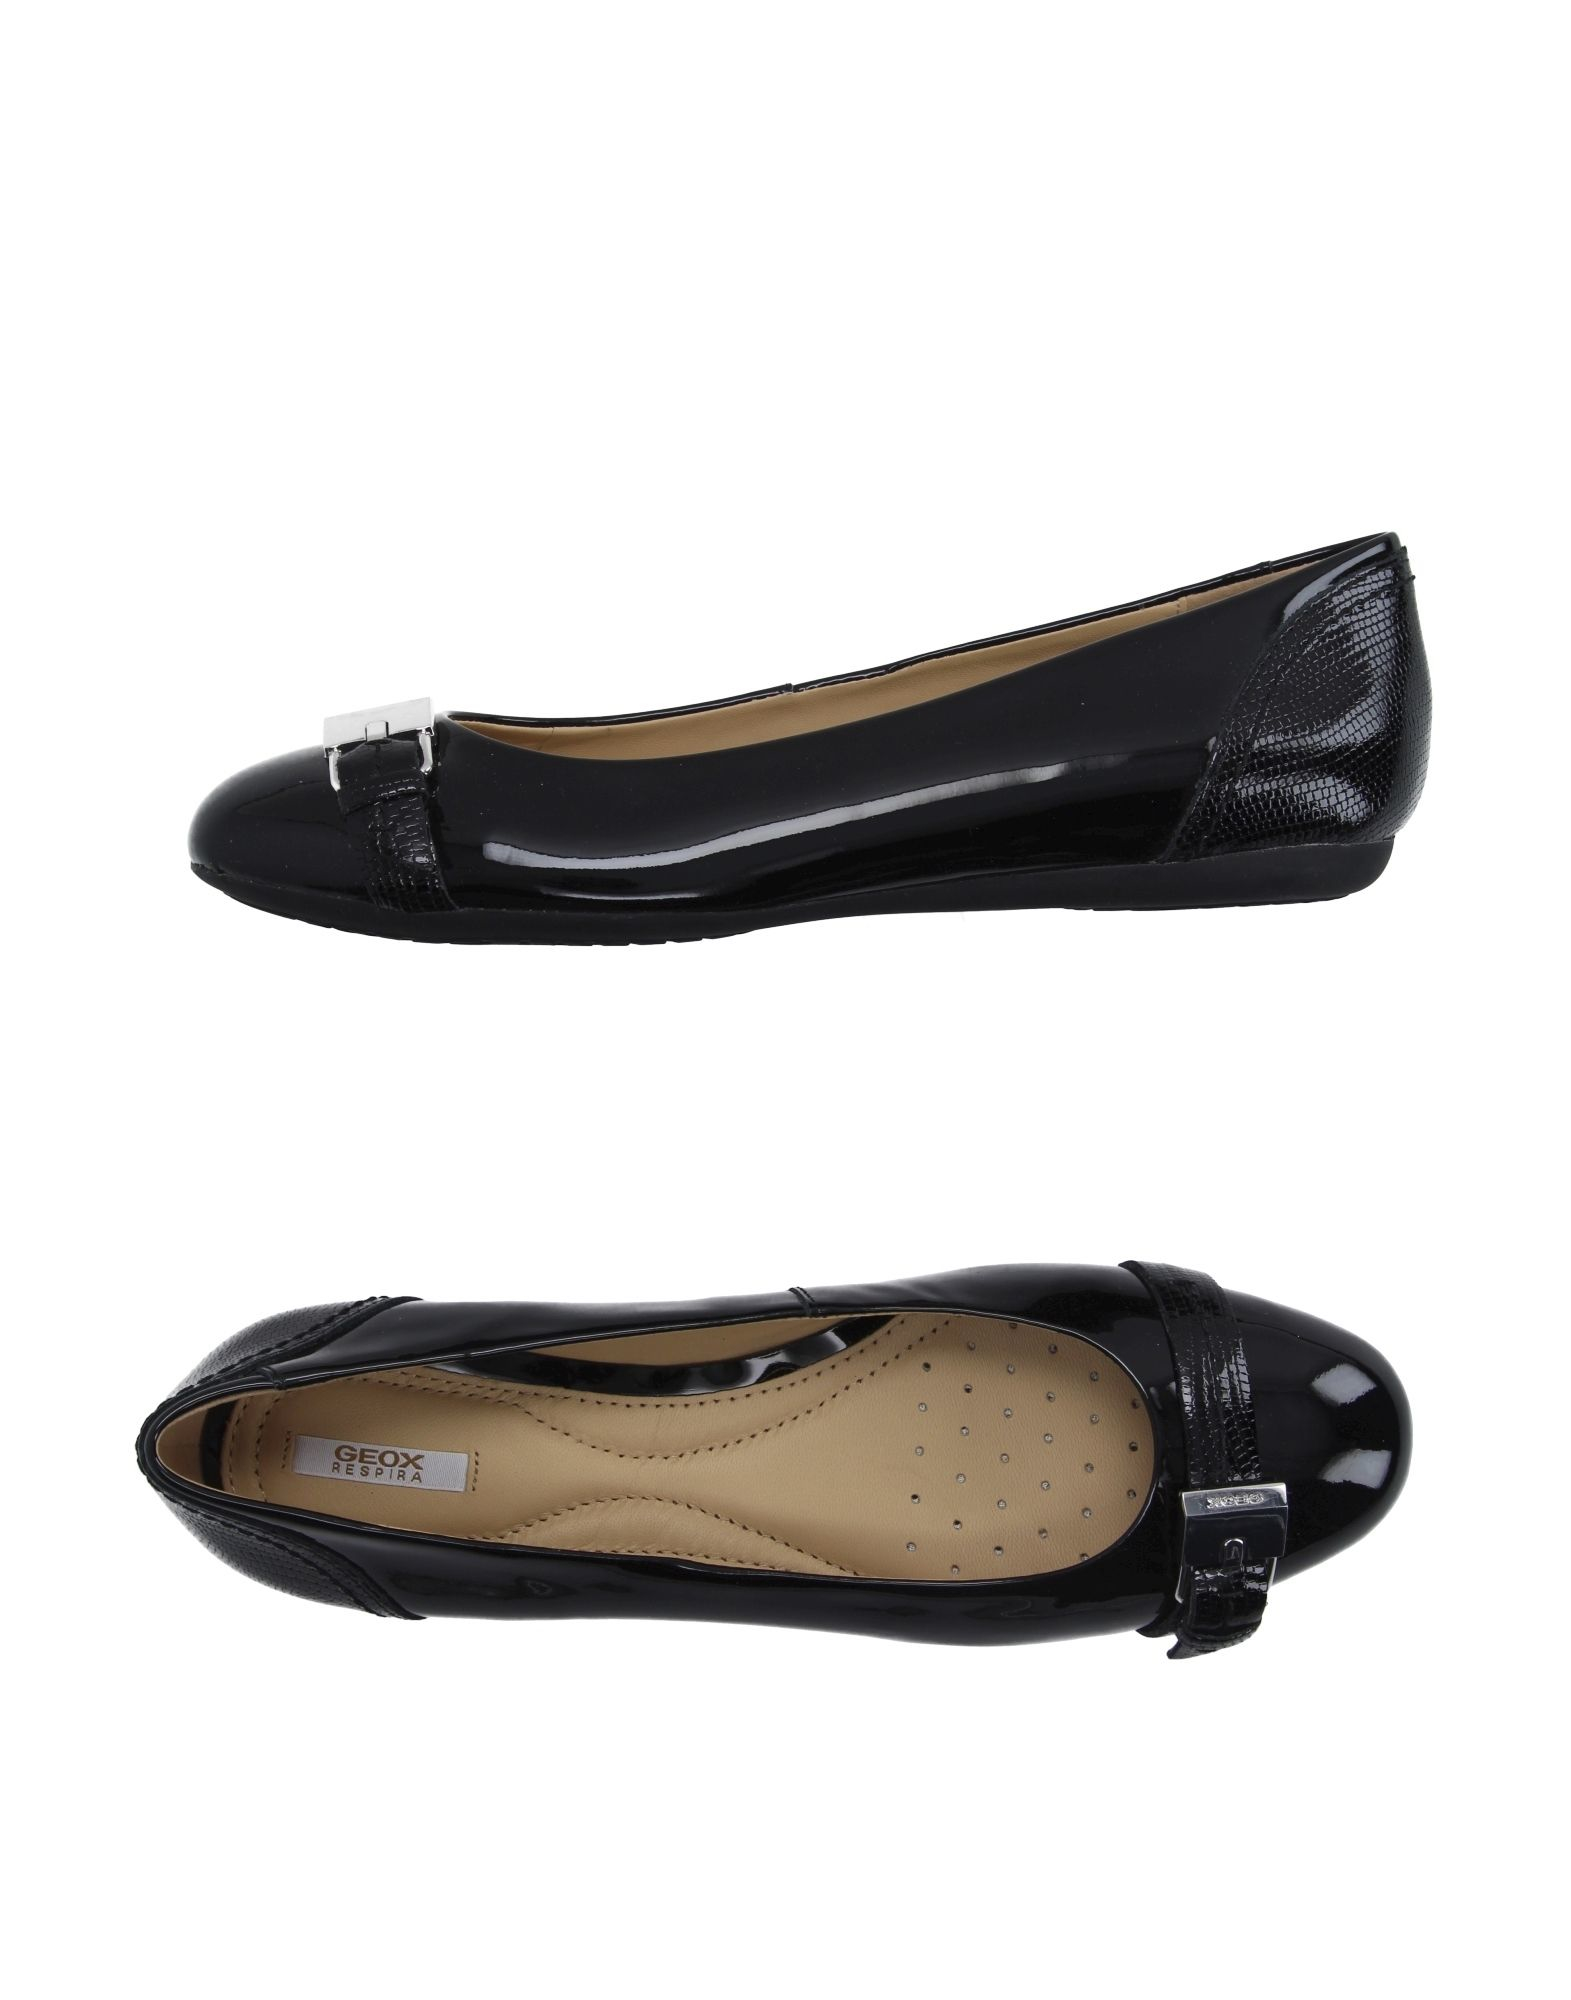 Geox Leather Ballerina Shoes Black